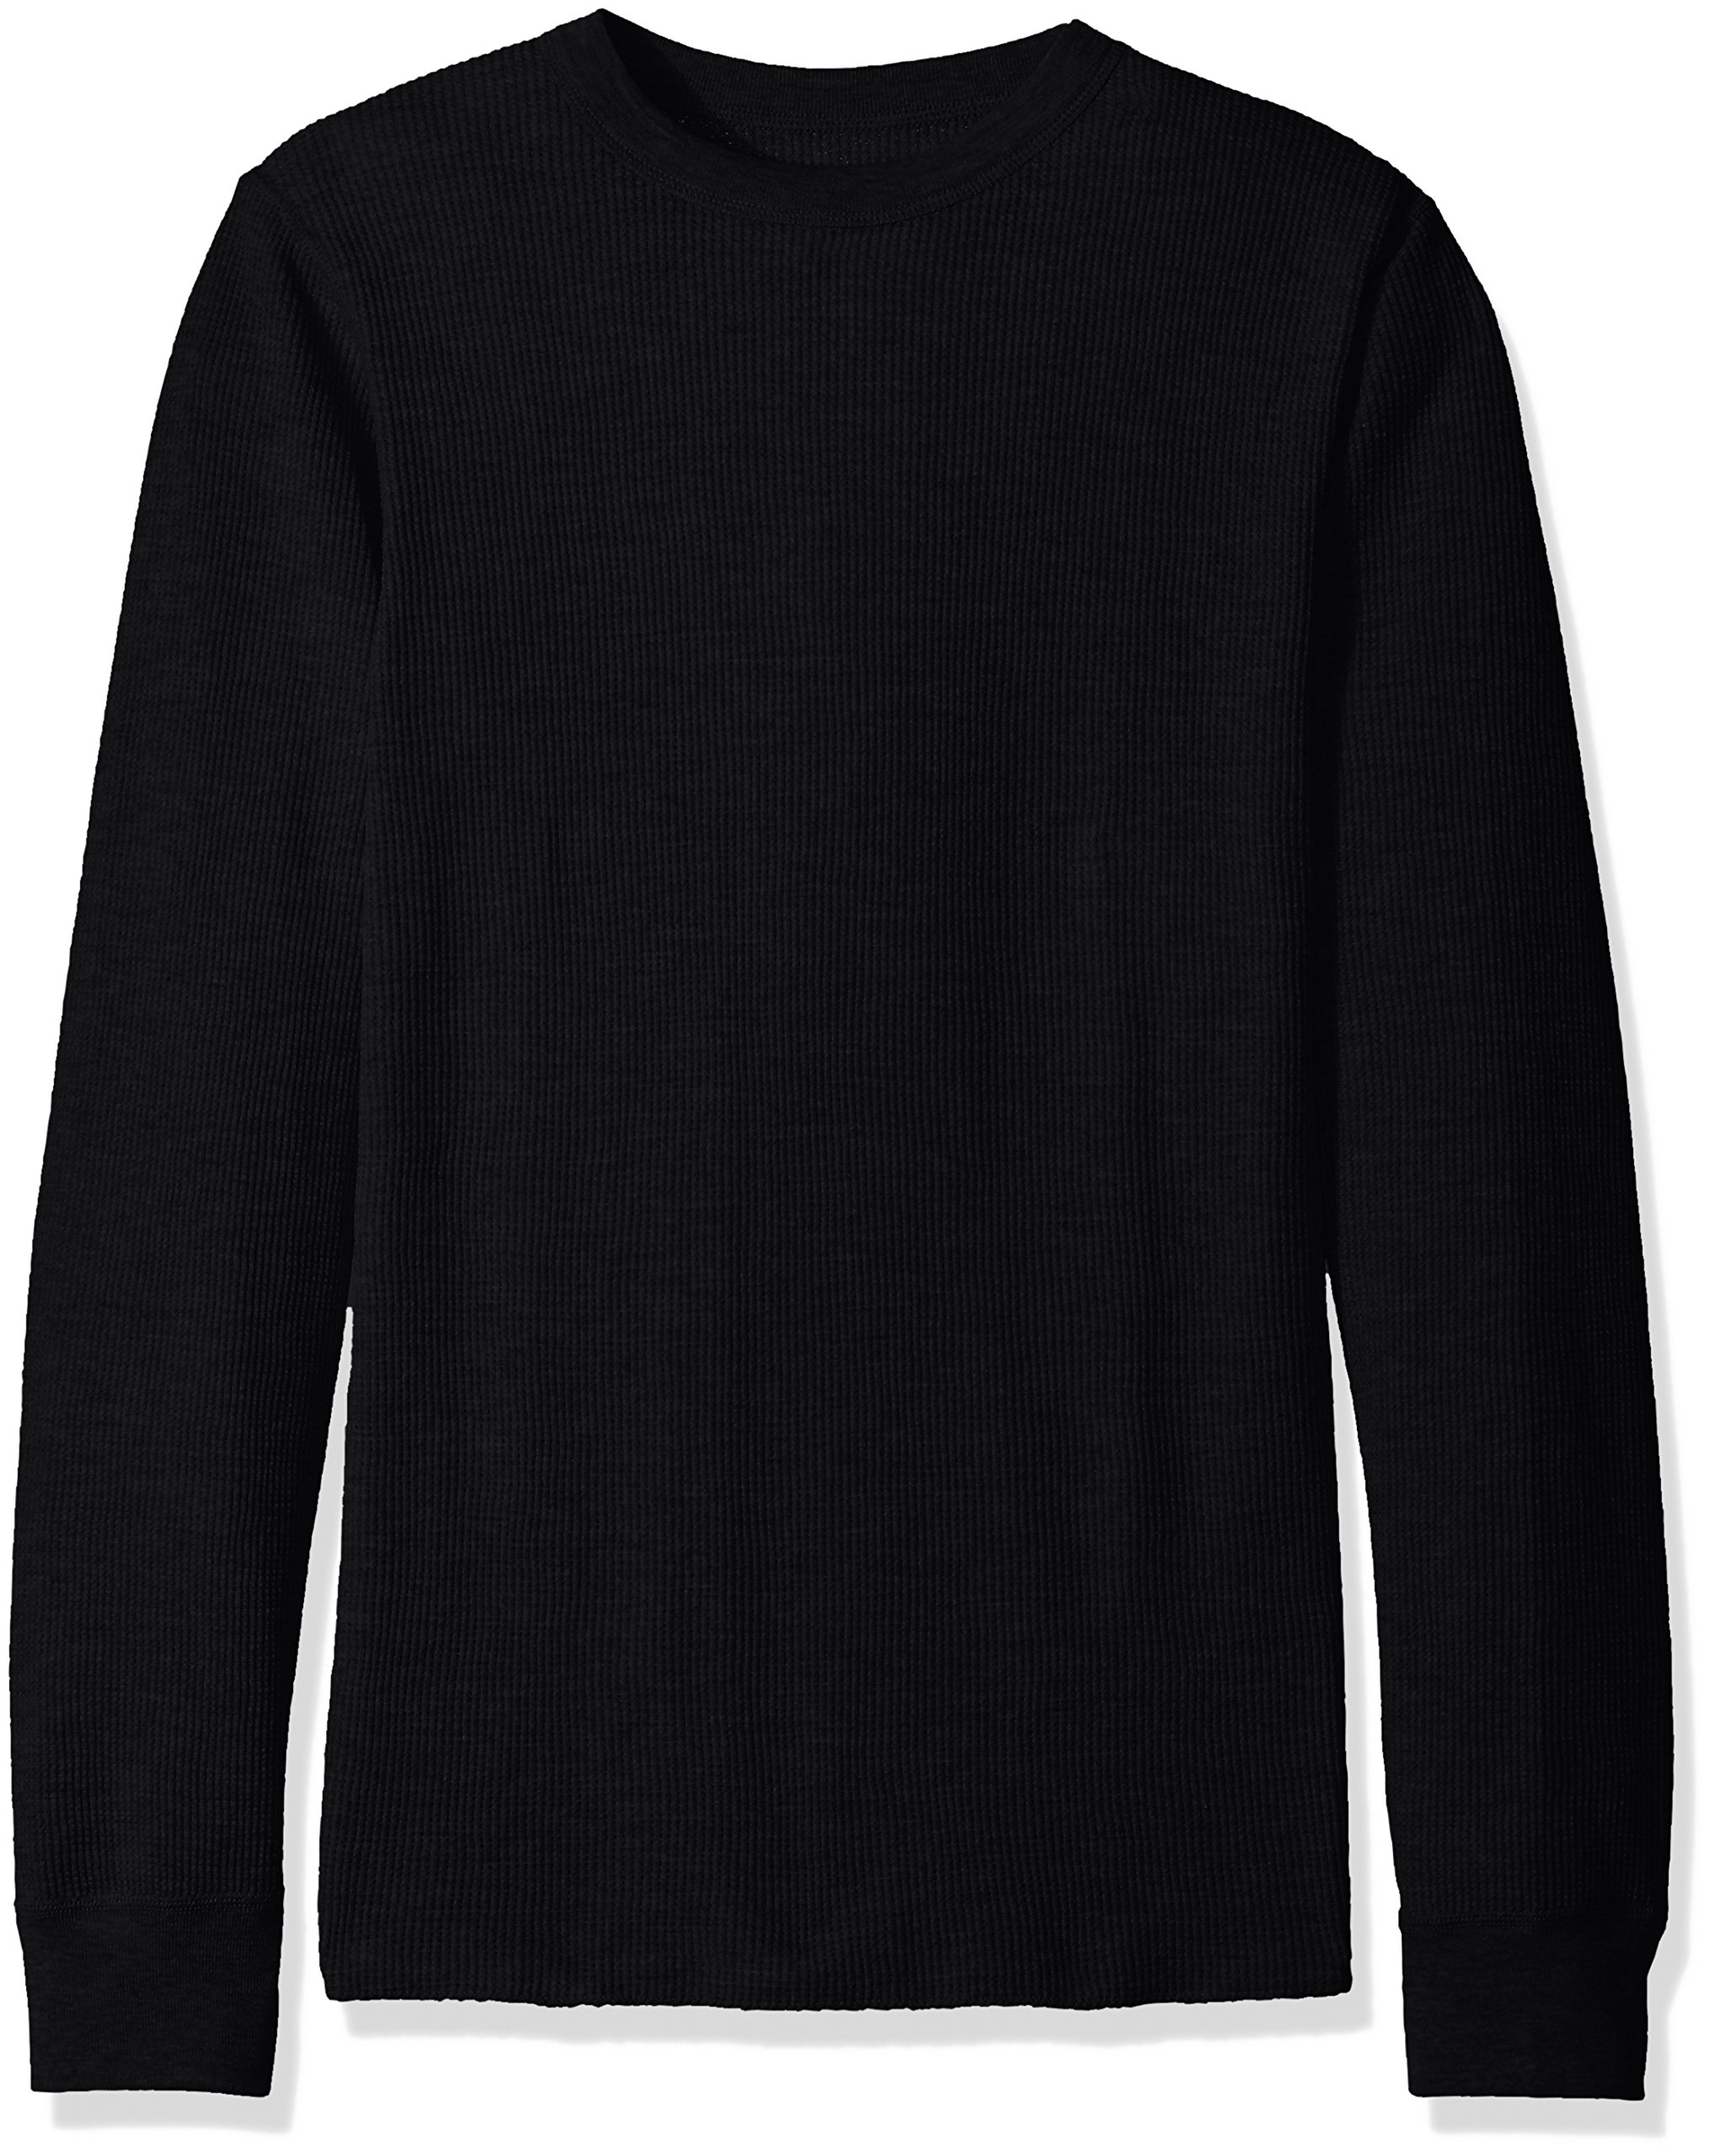 Hanes Men's Big Ultimate Thermal Crew, Black, Medium